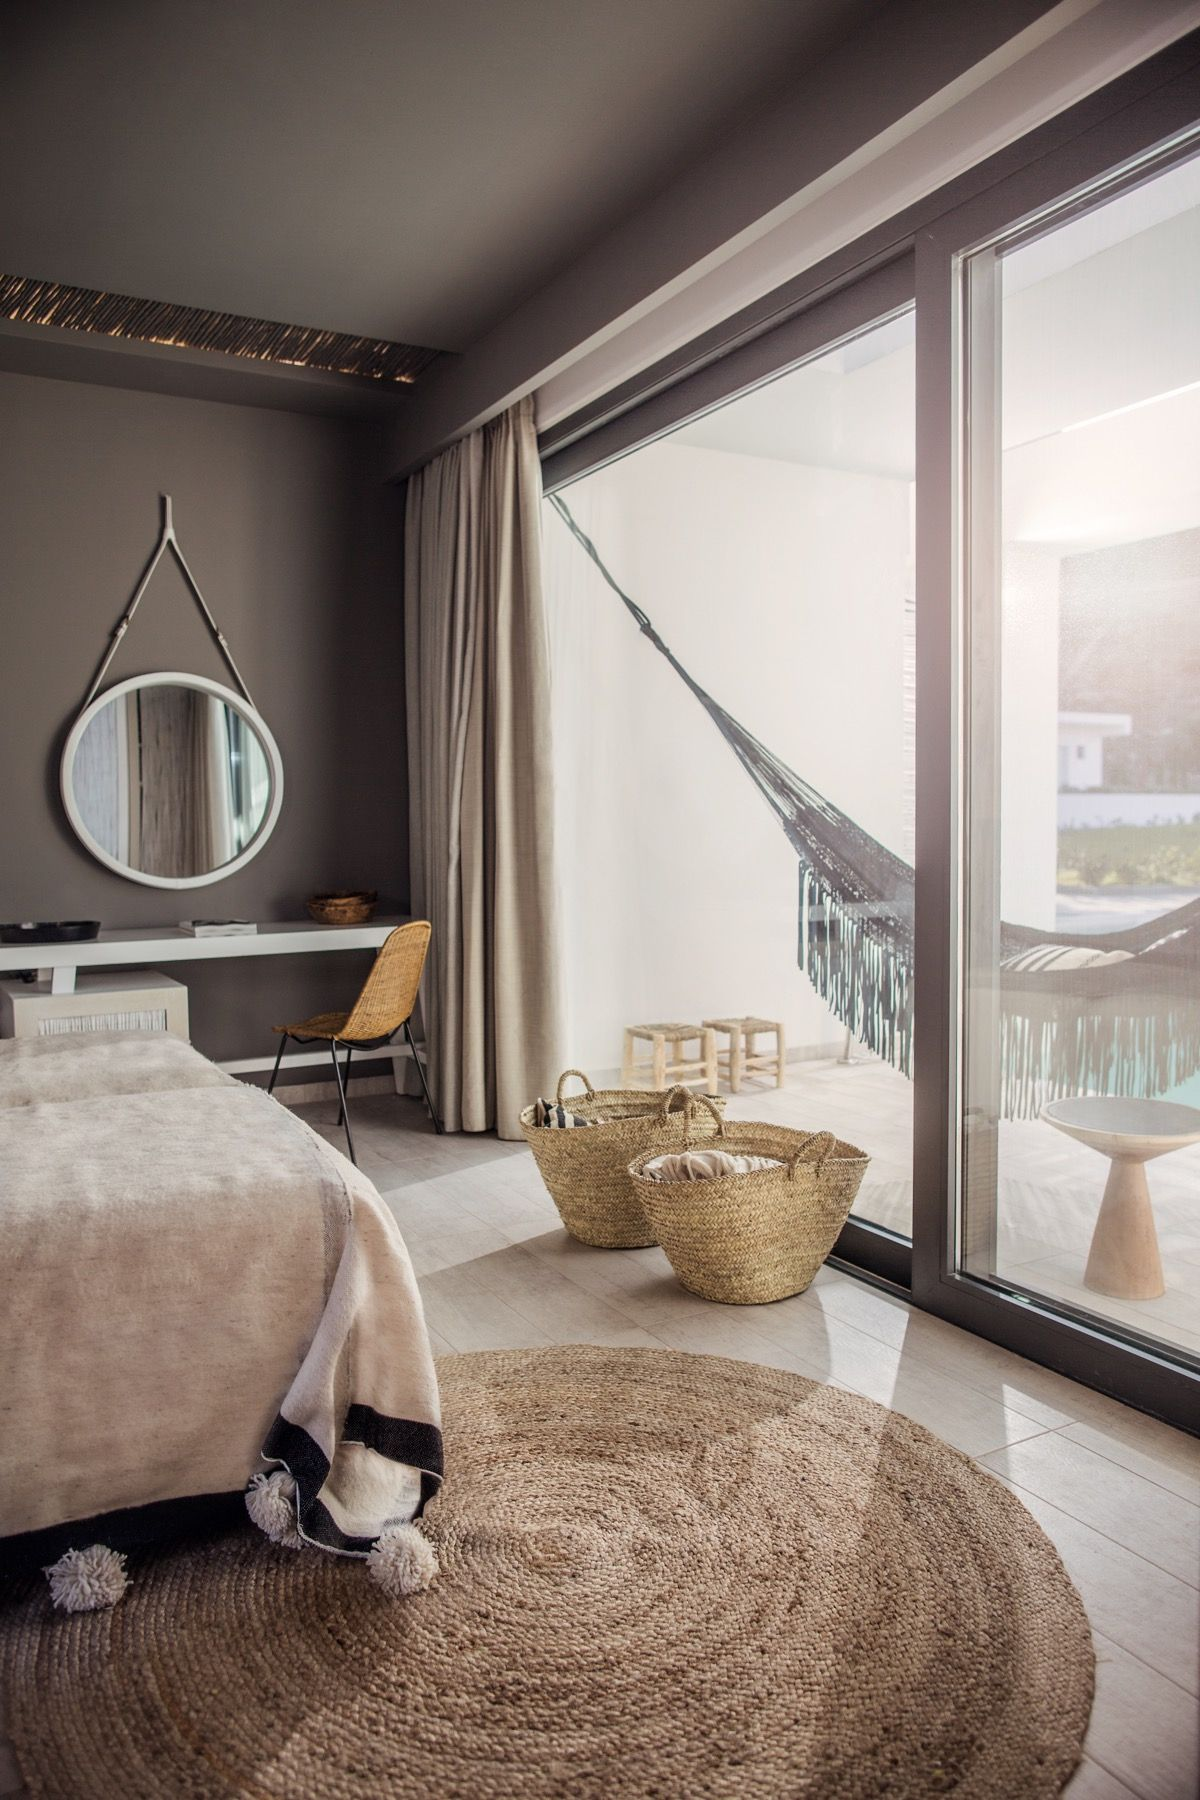 Boutique Hotel Bedrooms: Boutique Hotel With Nomadic Style Decor